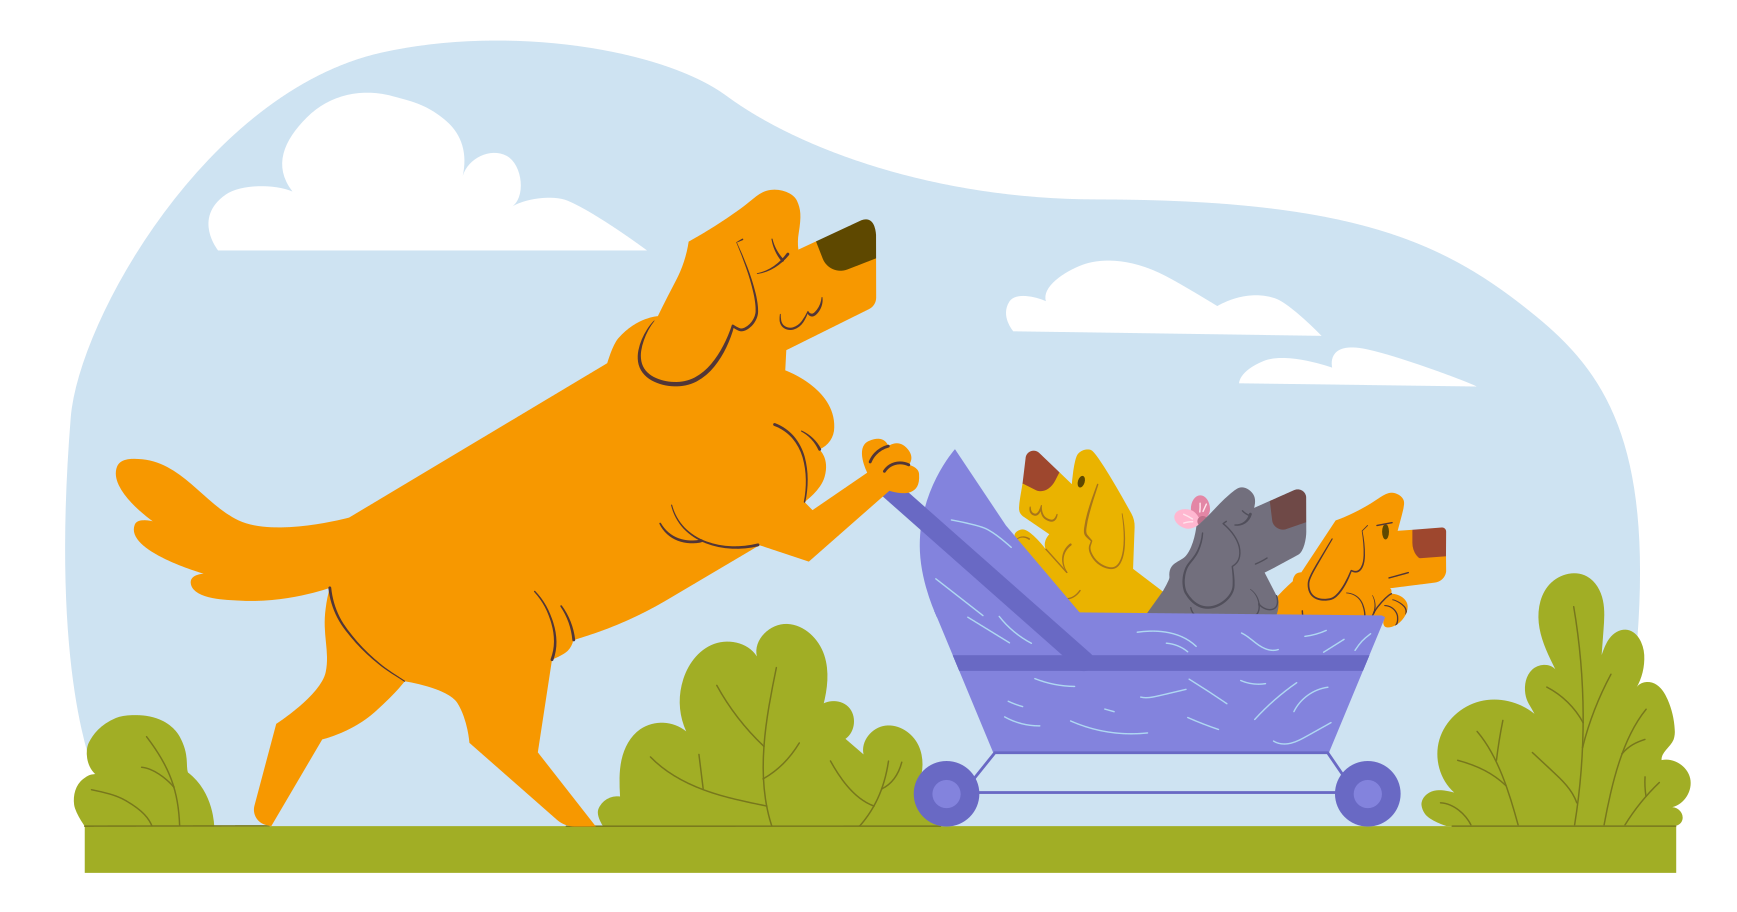 style Family holidays Vector images in PNG and SVG   Icons8 Illustrations